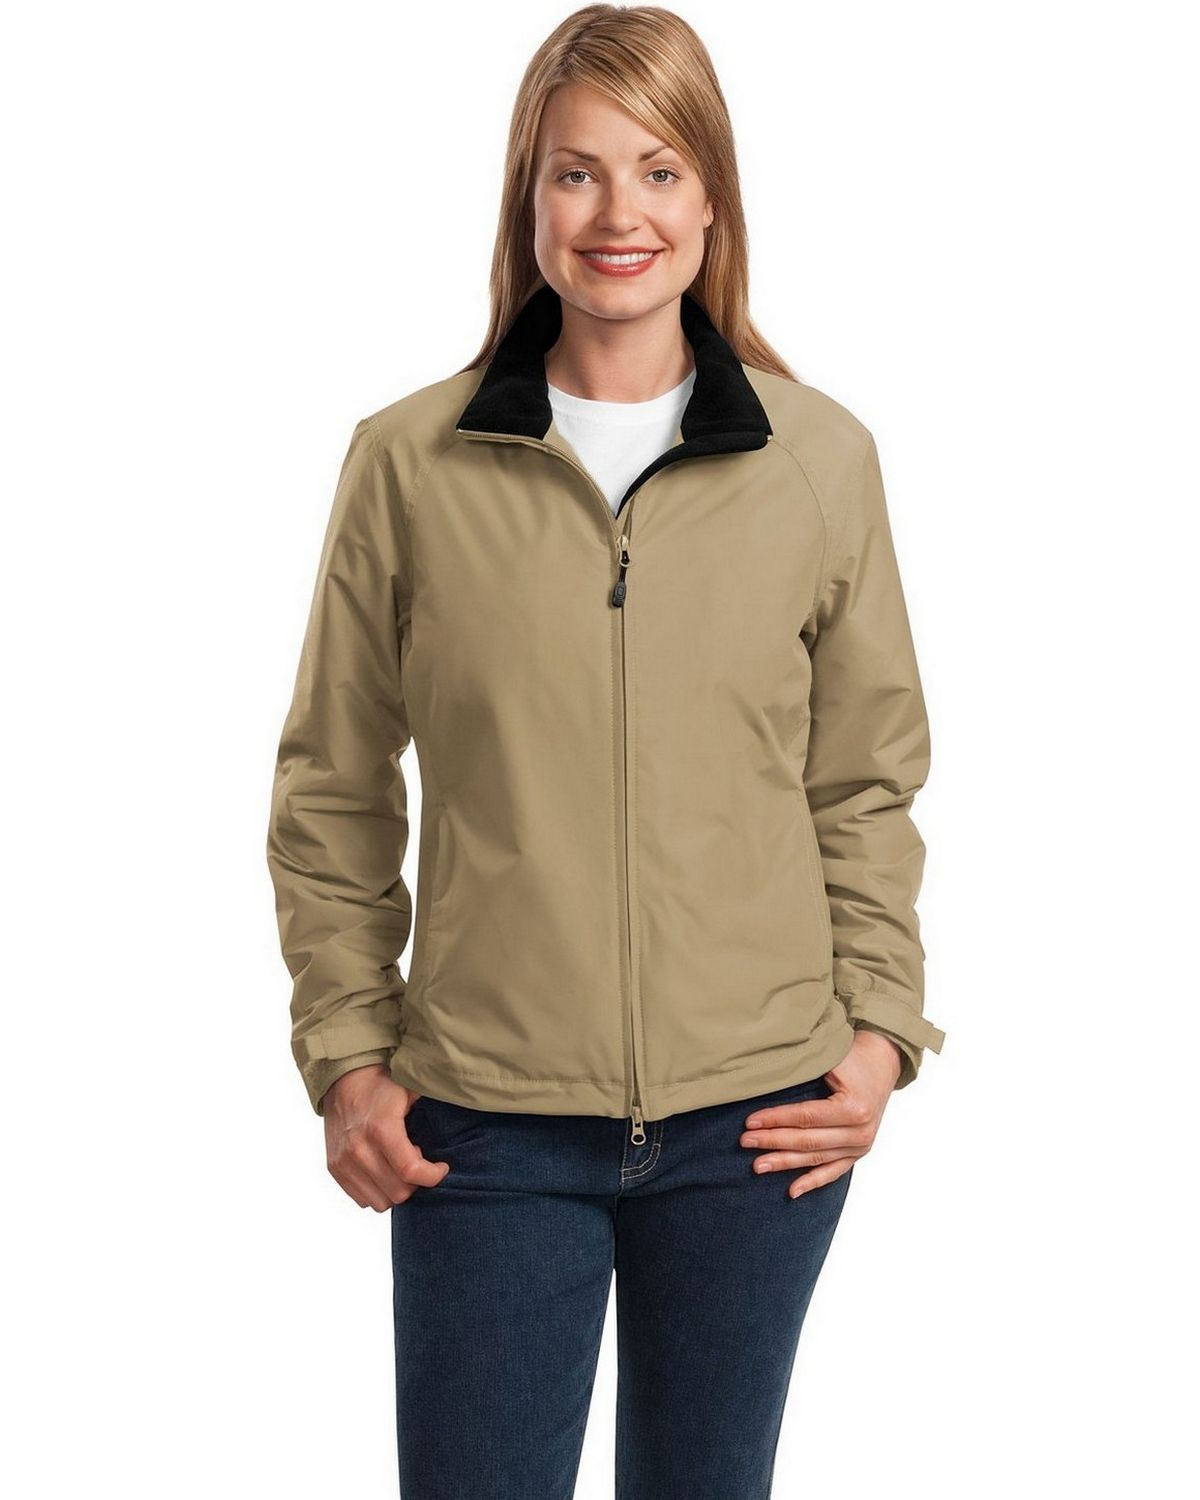 Port Authority L354 Ladies Challenger Jacket - True Red/True Black - XXL L354